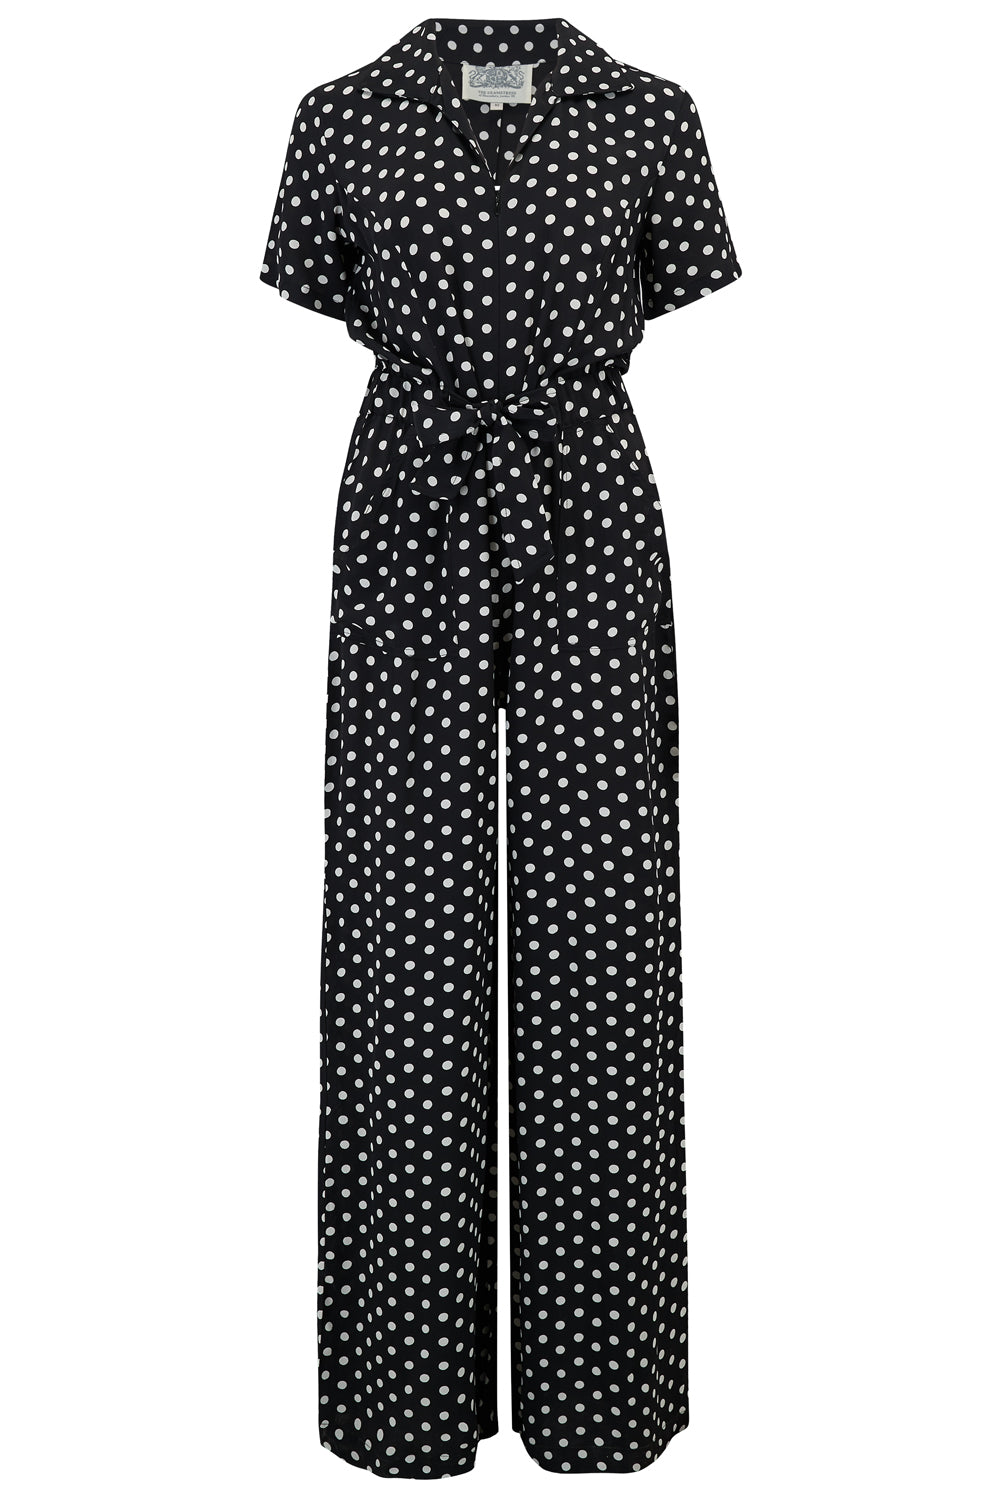 "The Seamstress Of Bloomsbury ""Lauren"" Siren Suit in Black Polka Dot, Authentic & Classic 1940s Style"